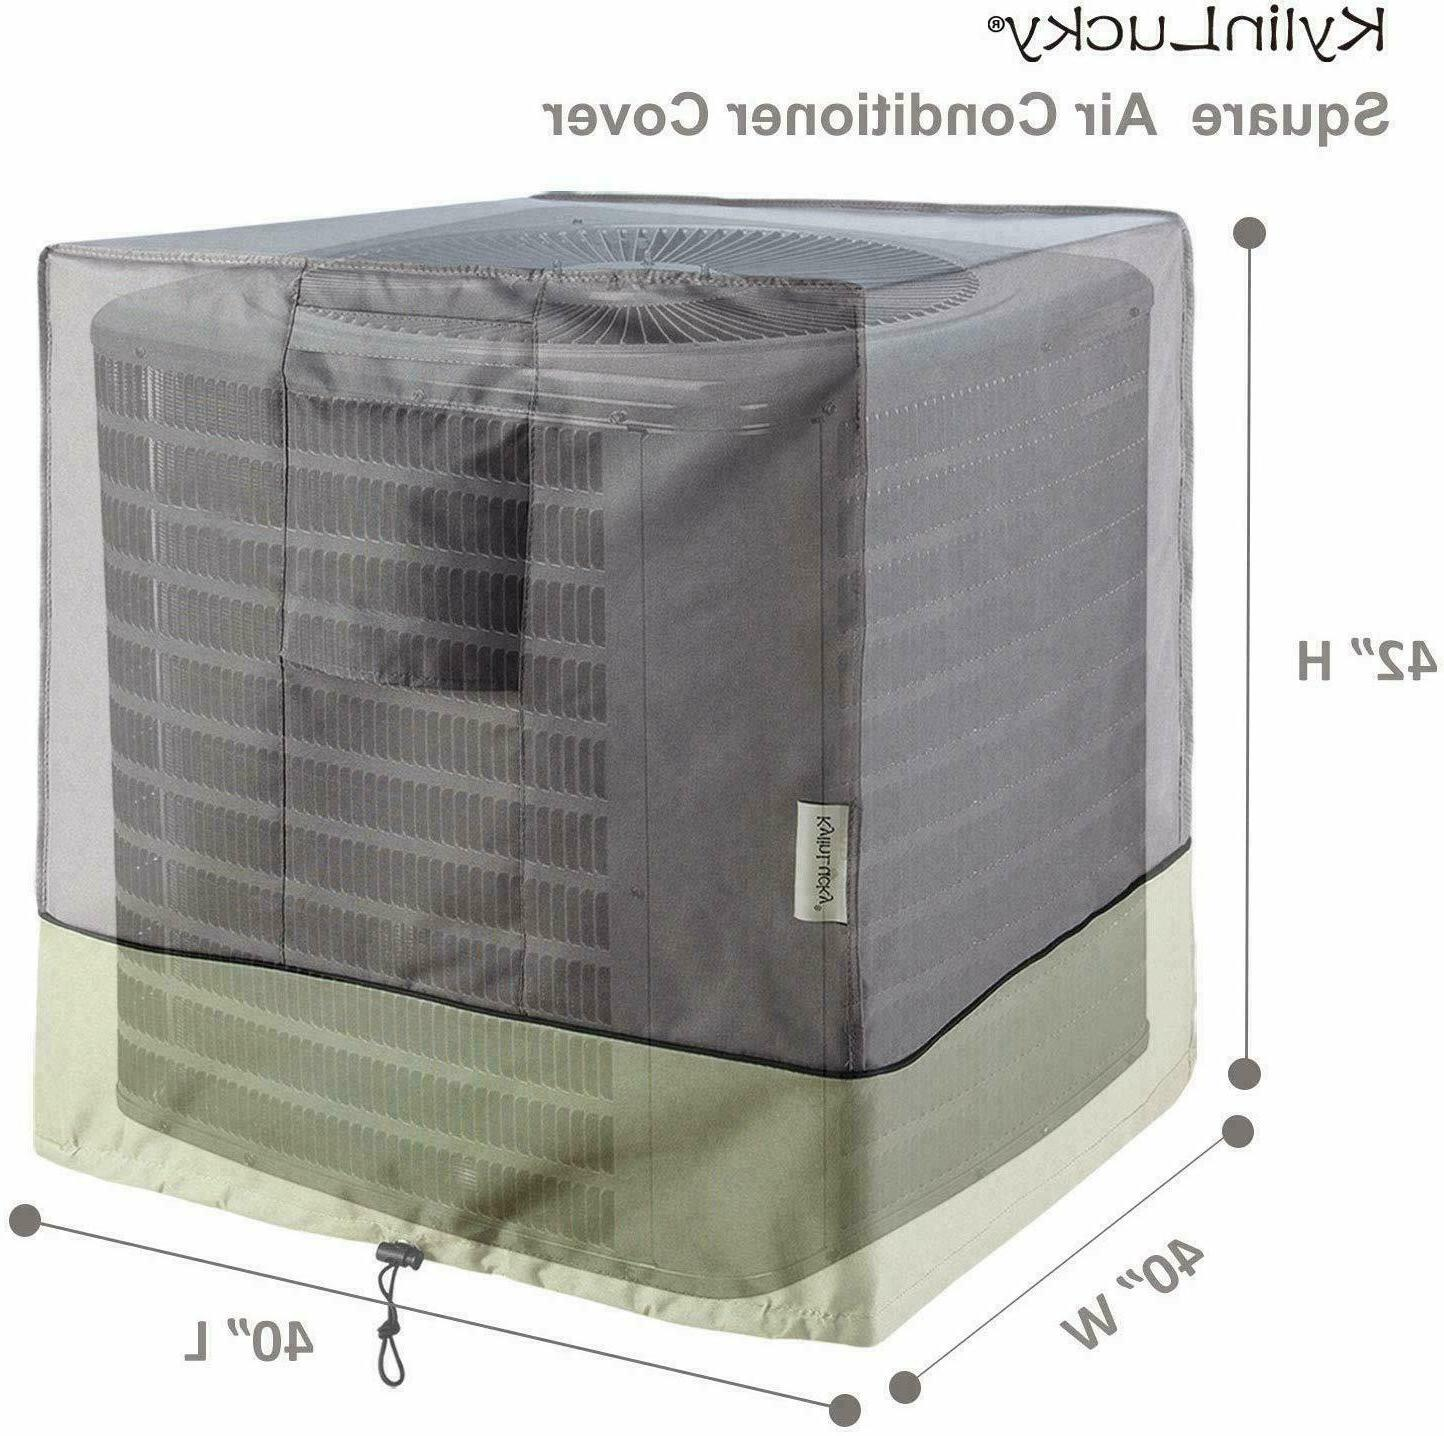 KylinLucky Air Conditioner for Covers Up 40x40x42